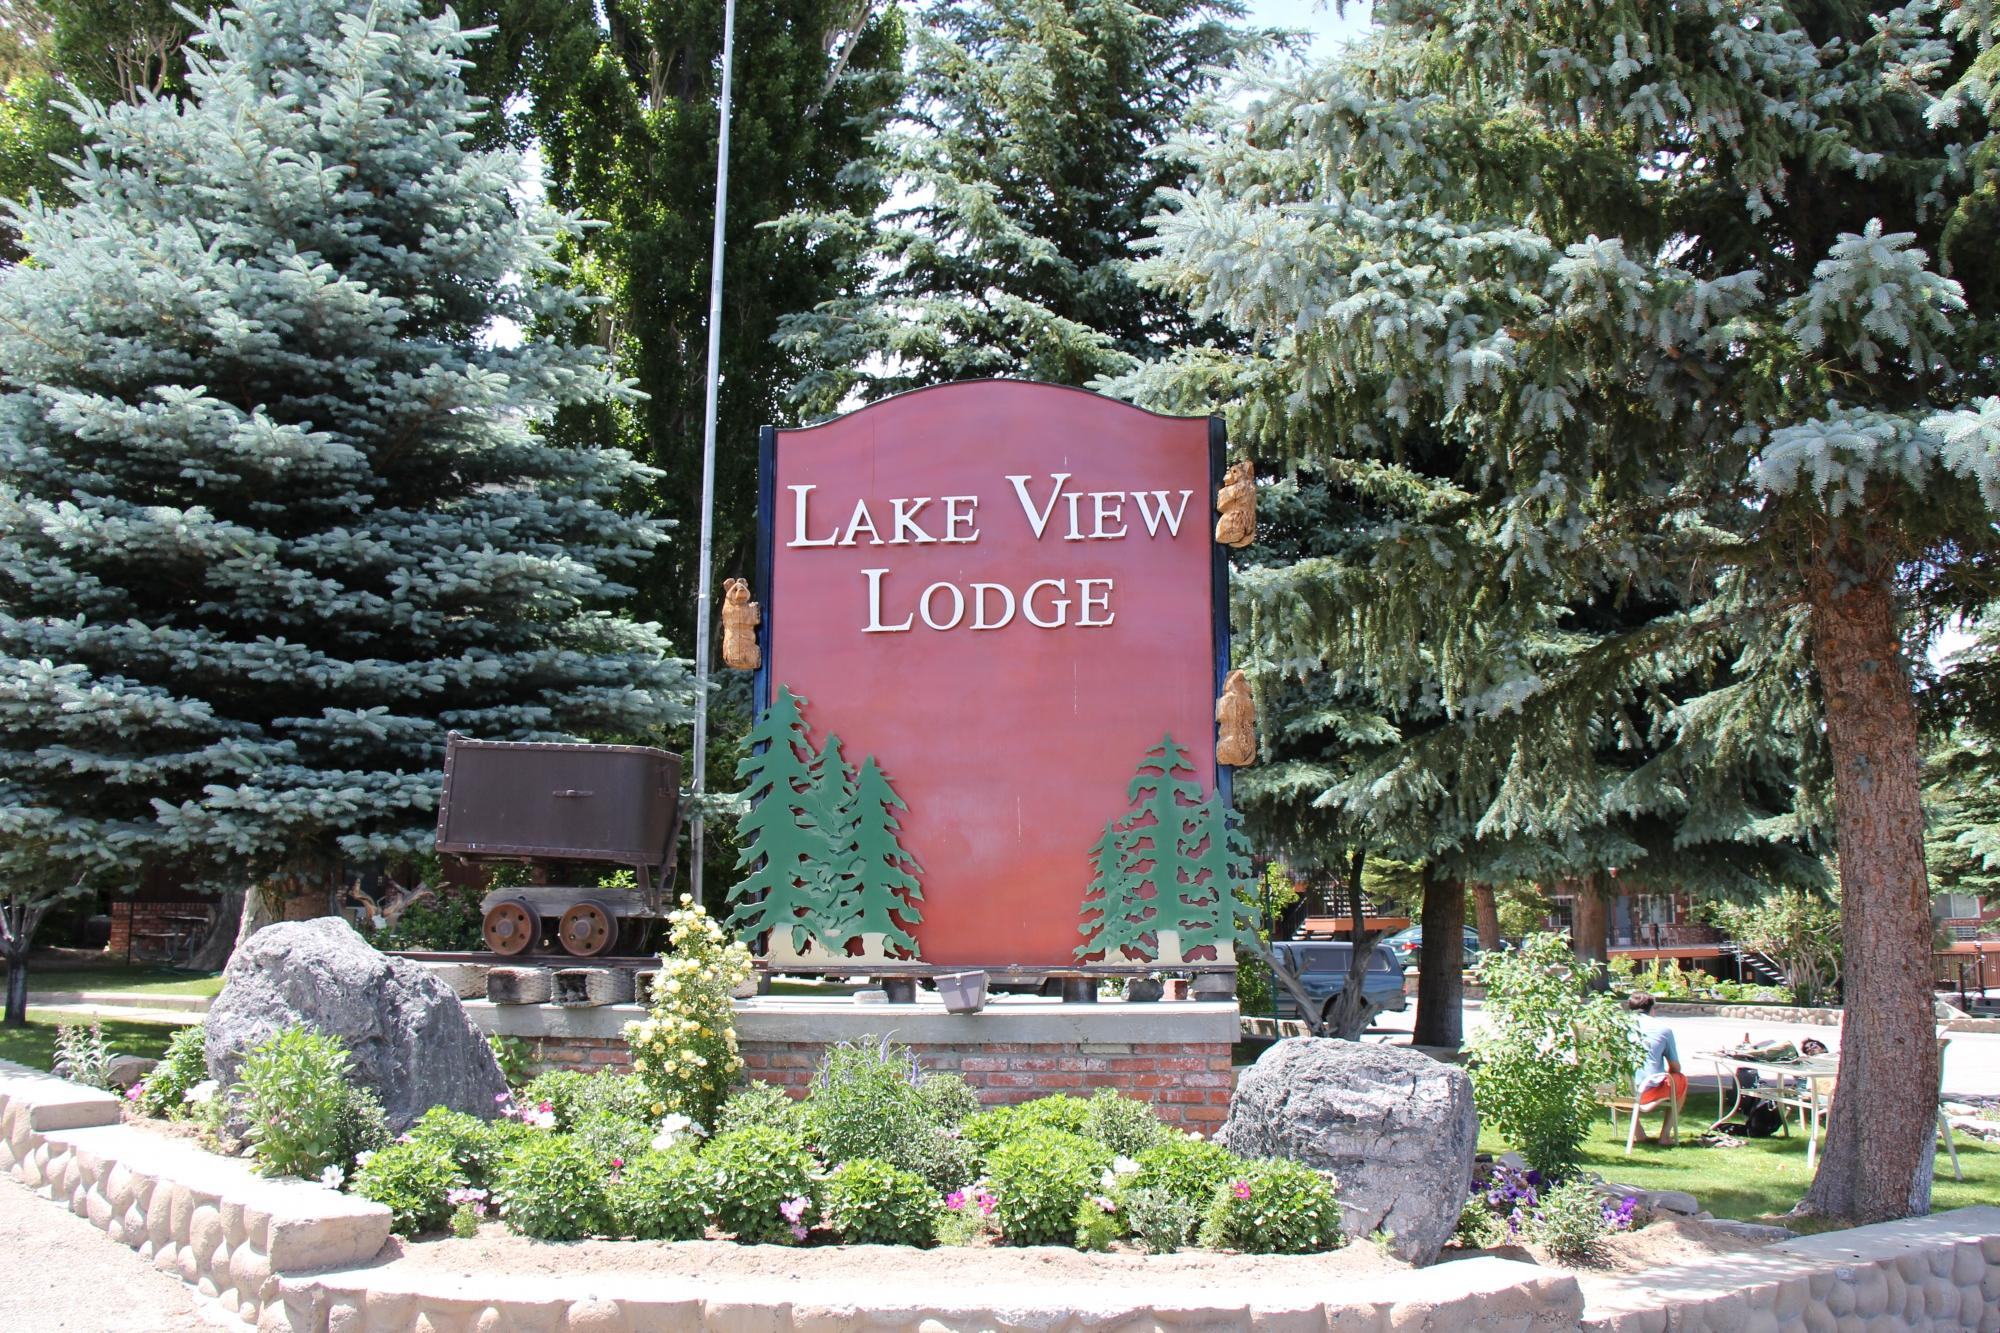 Lake View Lodge